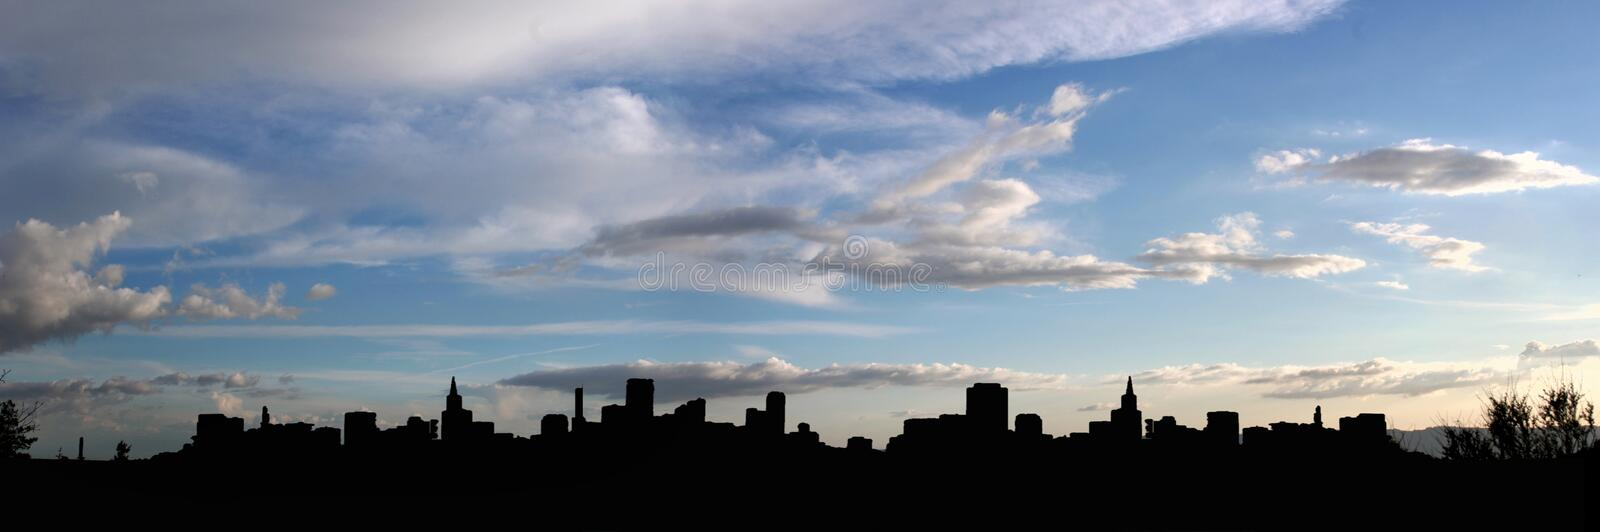 City silhouette (panorama) royalty free stock photo